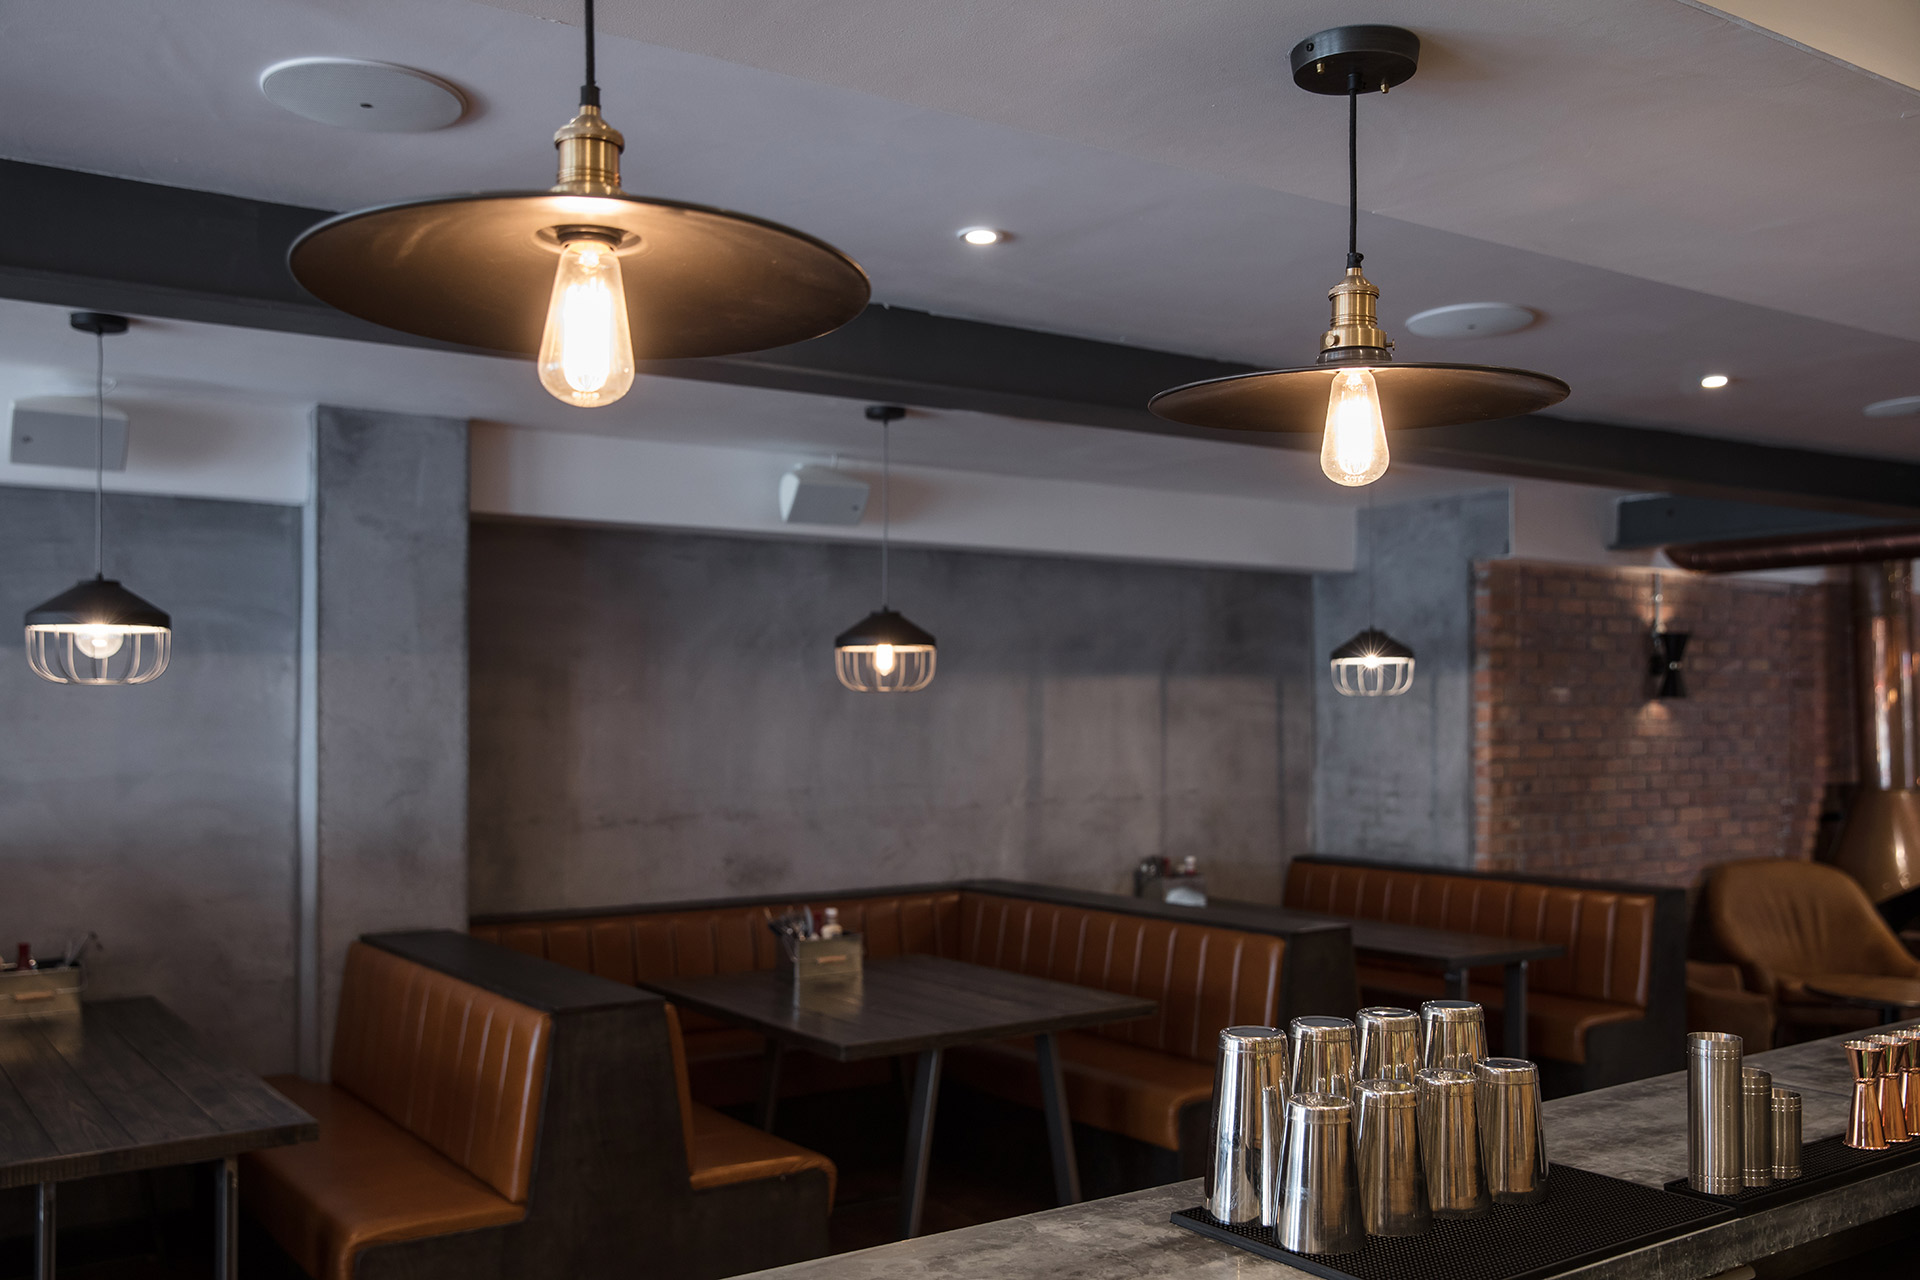 Leather banquet seating with concrete wall and exposed brick wall